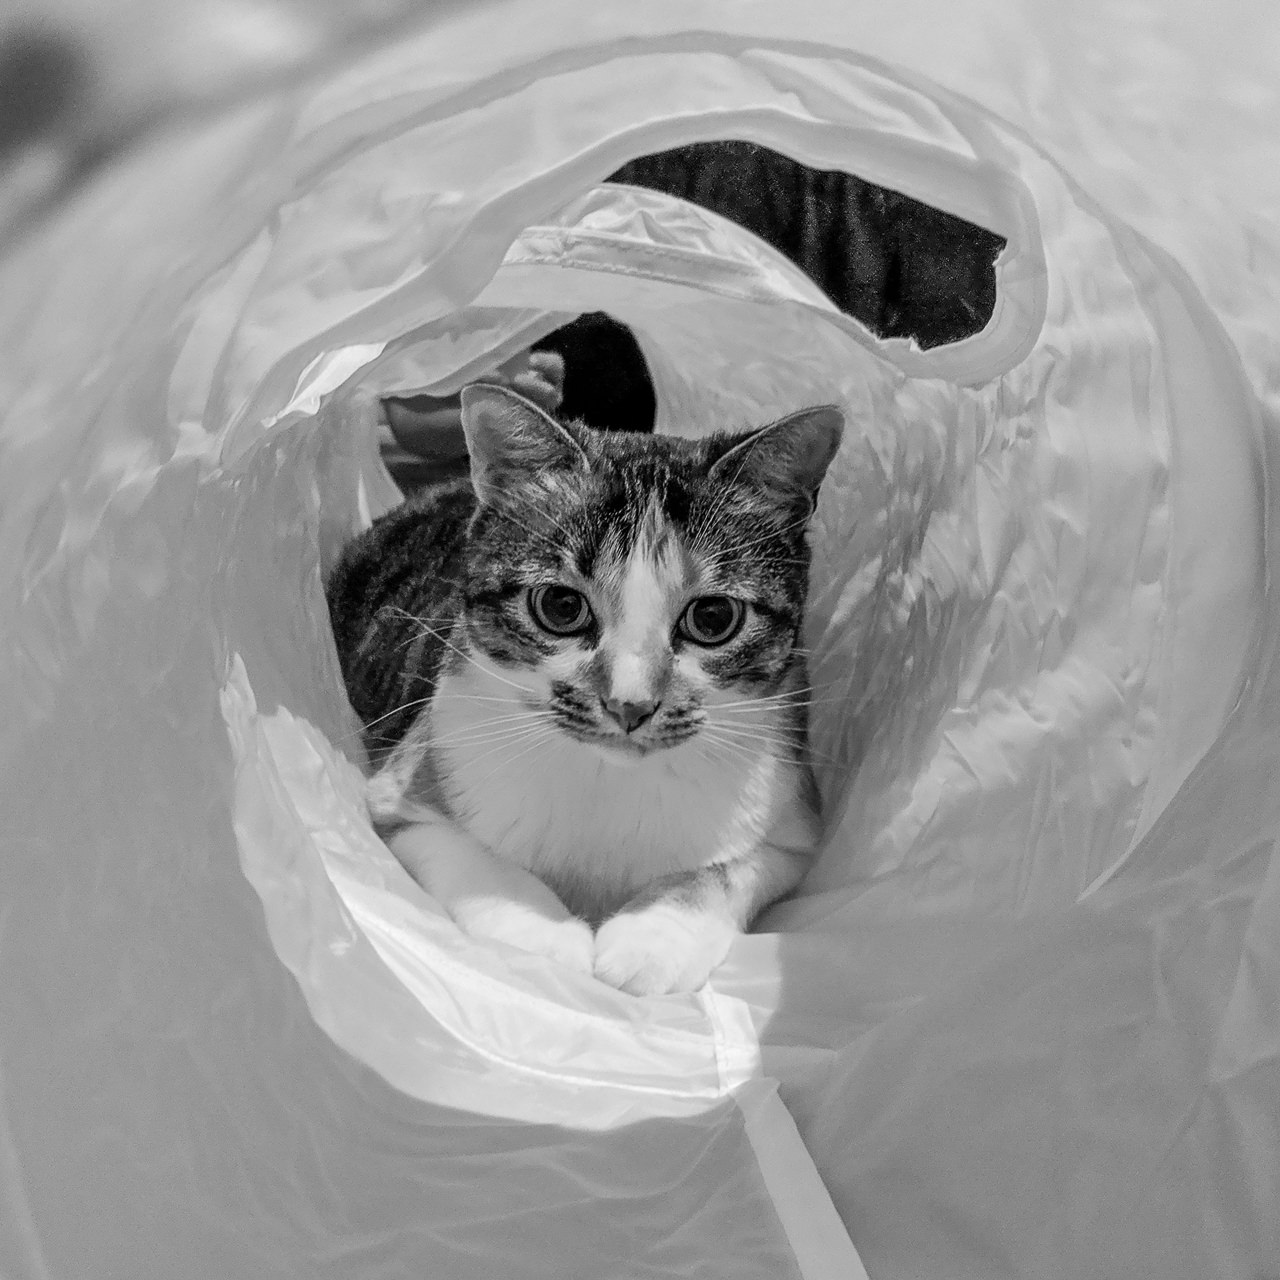 Day 242 - 365 Day B&W Photo Challenge - Gigi playing in her new cat tube.  - Google Pixel 3, process in Lightroom